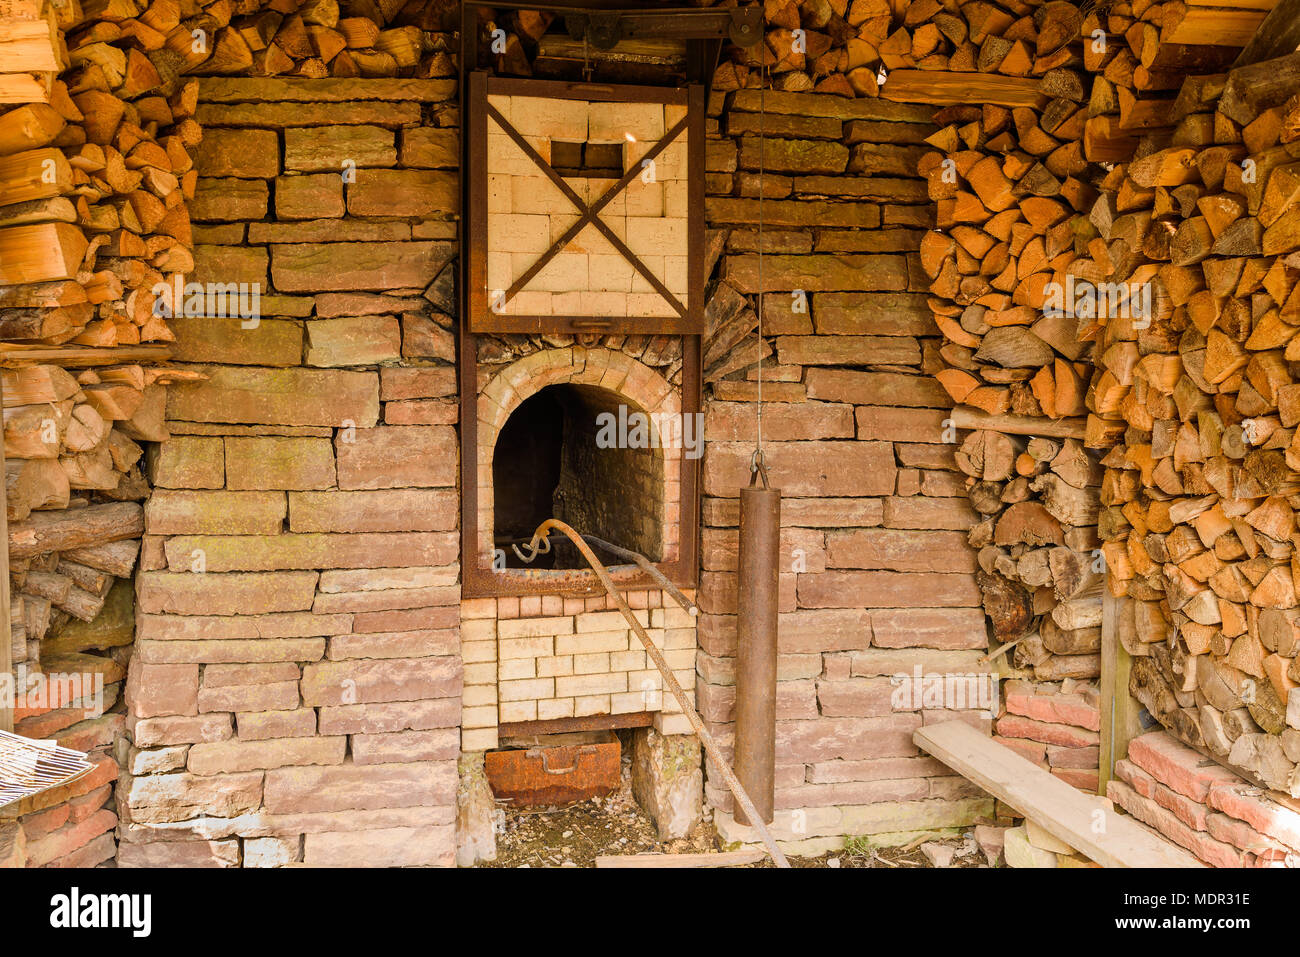 Elegant Traditional Wood Fired Lime Kiln For Production Of Slaked Lime. Working  Replica Outside Borgholm Castle Ruin On Oland, Sweden Stock Photo:  180601498   Alamy